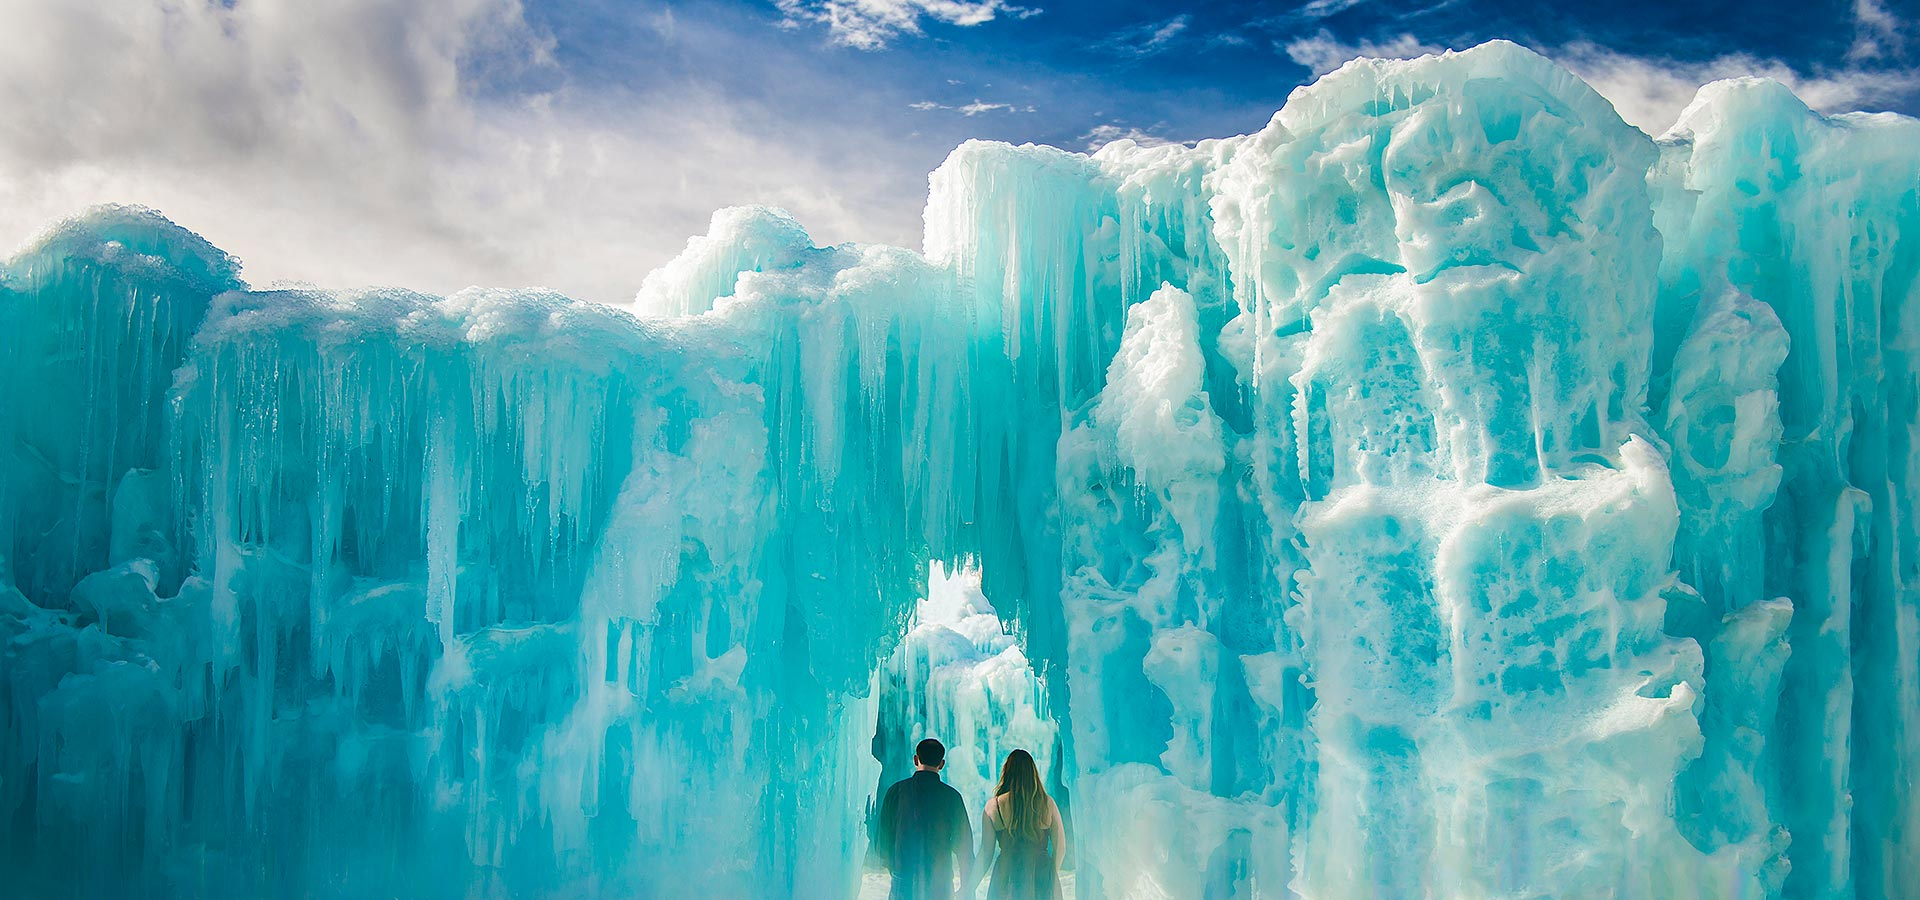 Bride and Groom in Ice Castle | Keystone Ice Castle Engagement | Colorado Wedding Photographer | J. La Plante Photo